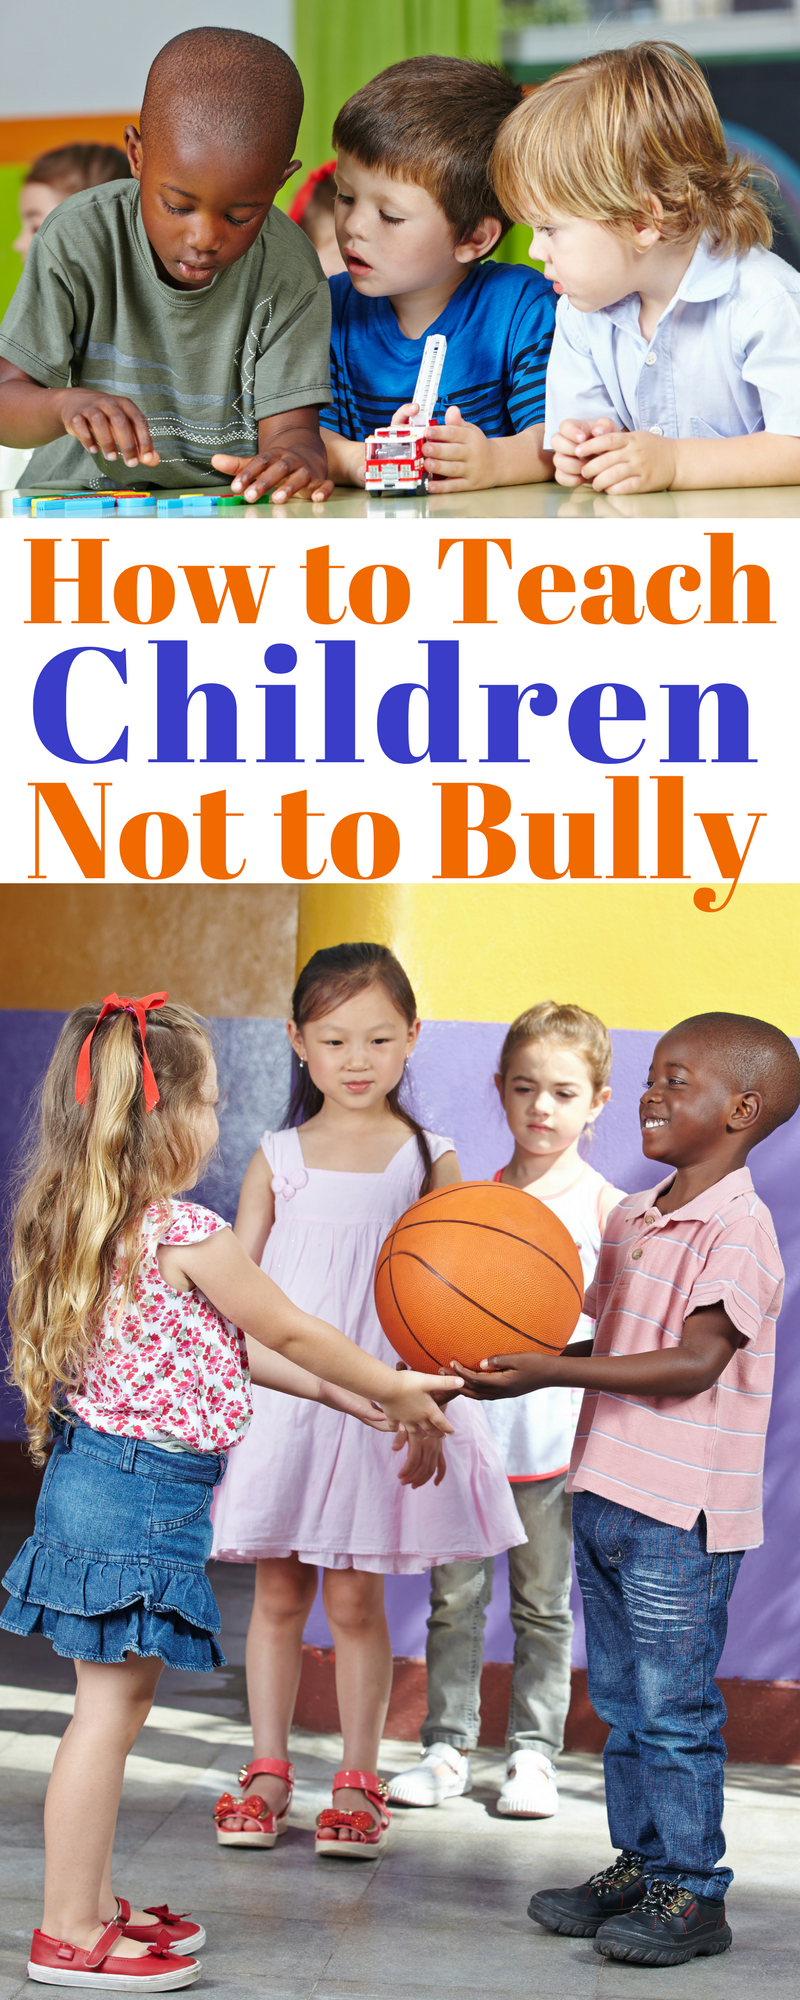 Parenting is tough and sometimes we need a little help. Here are some simple solutions for how to teach children not to bully.